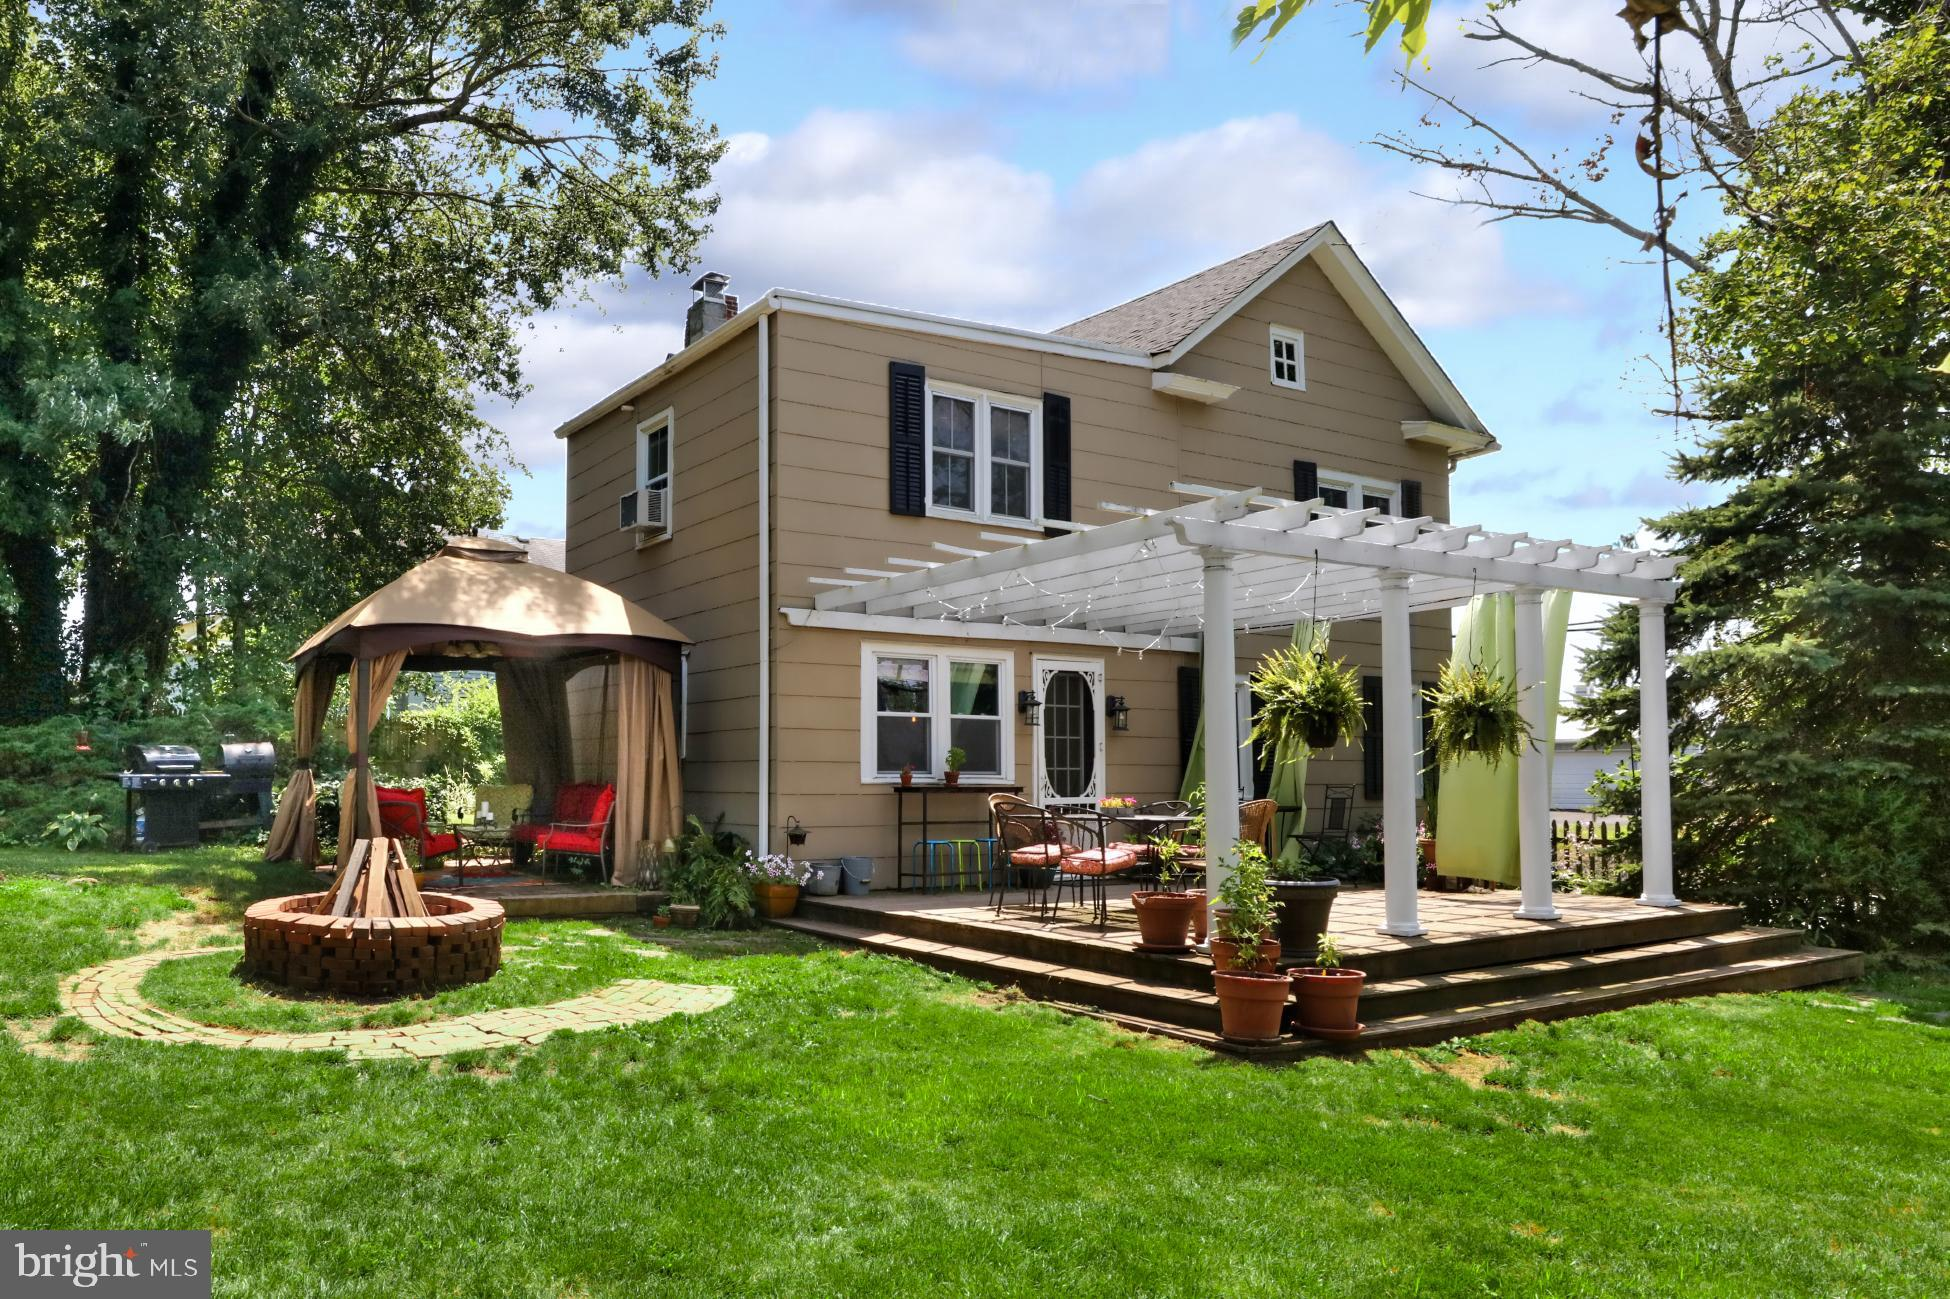 1046 COUNTY RD 519, FRENCHTOWN, NJ 08825